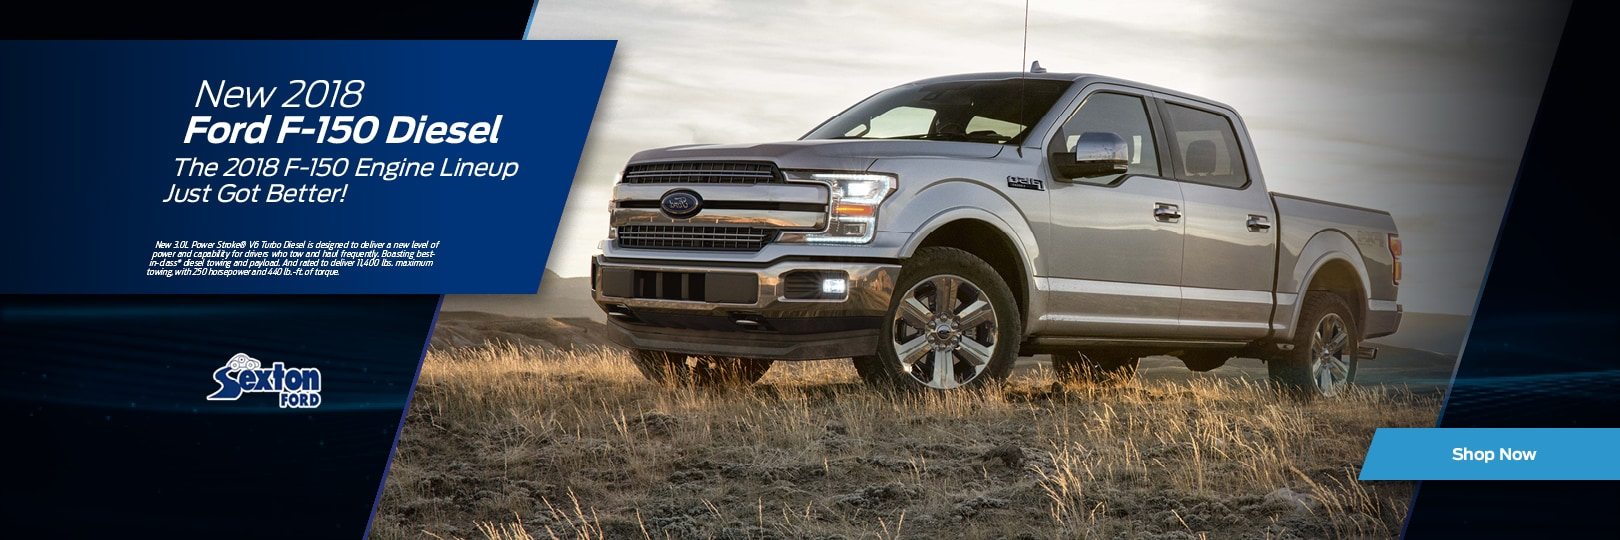 Cars For Sale Quad Cities >> Moline's Sexton Ford Sales   New 2018 - 2019 and Used Ford Cars For Sale in Quad Cities ...